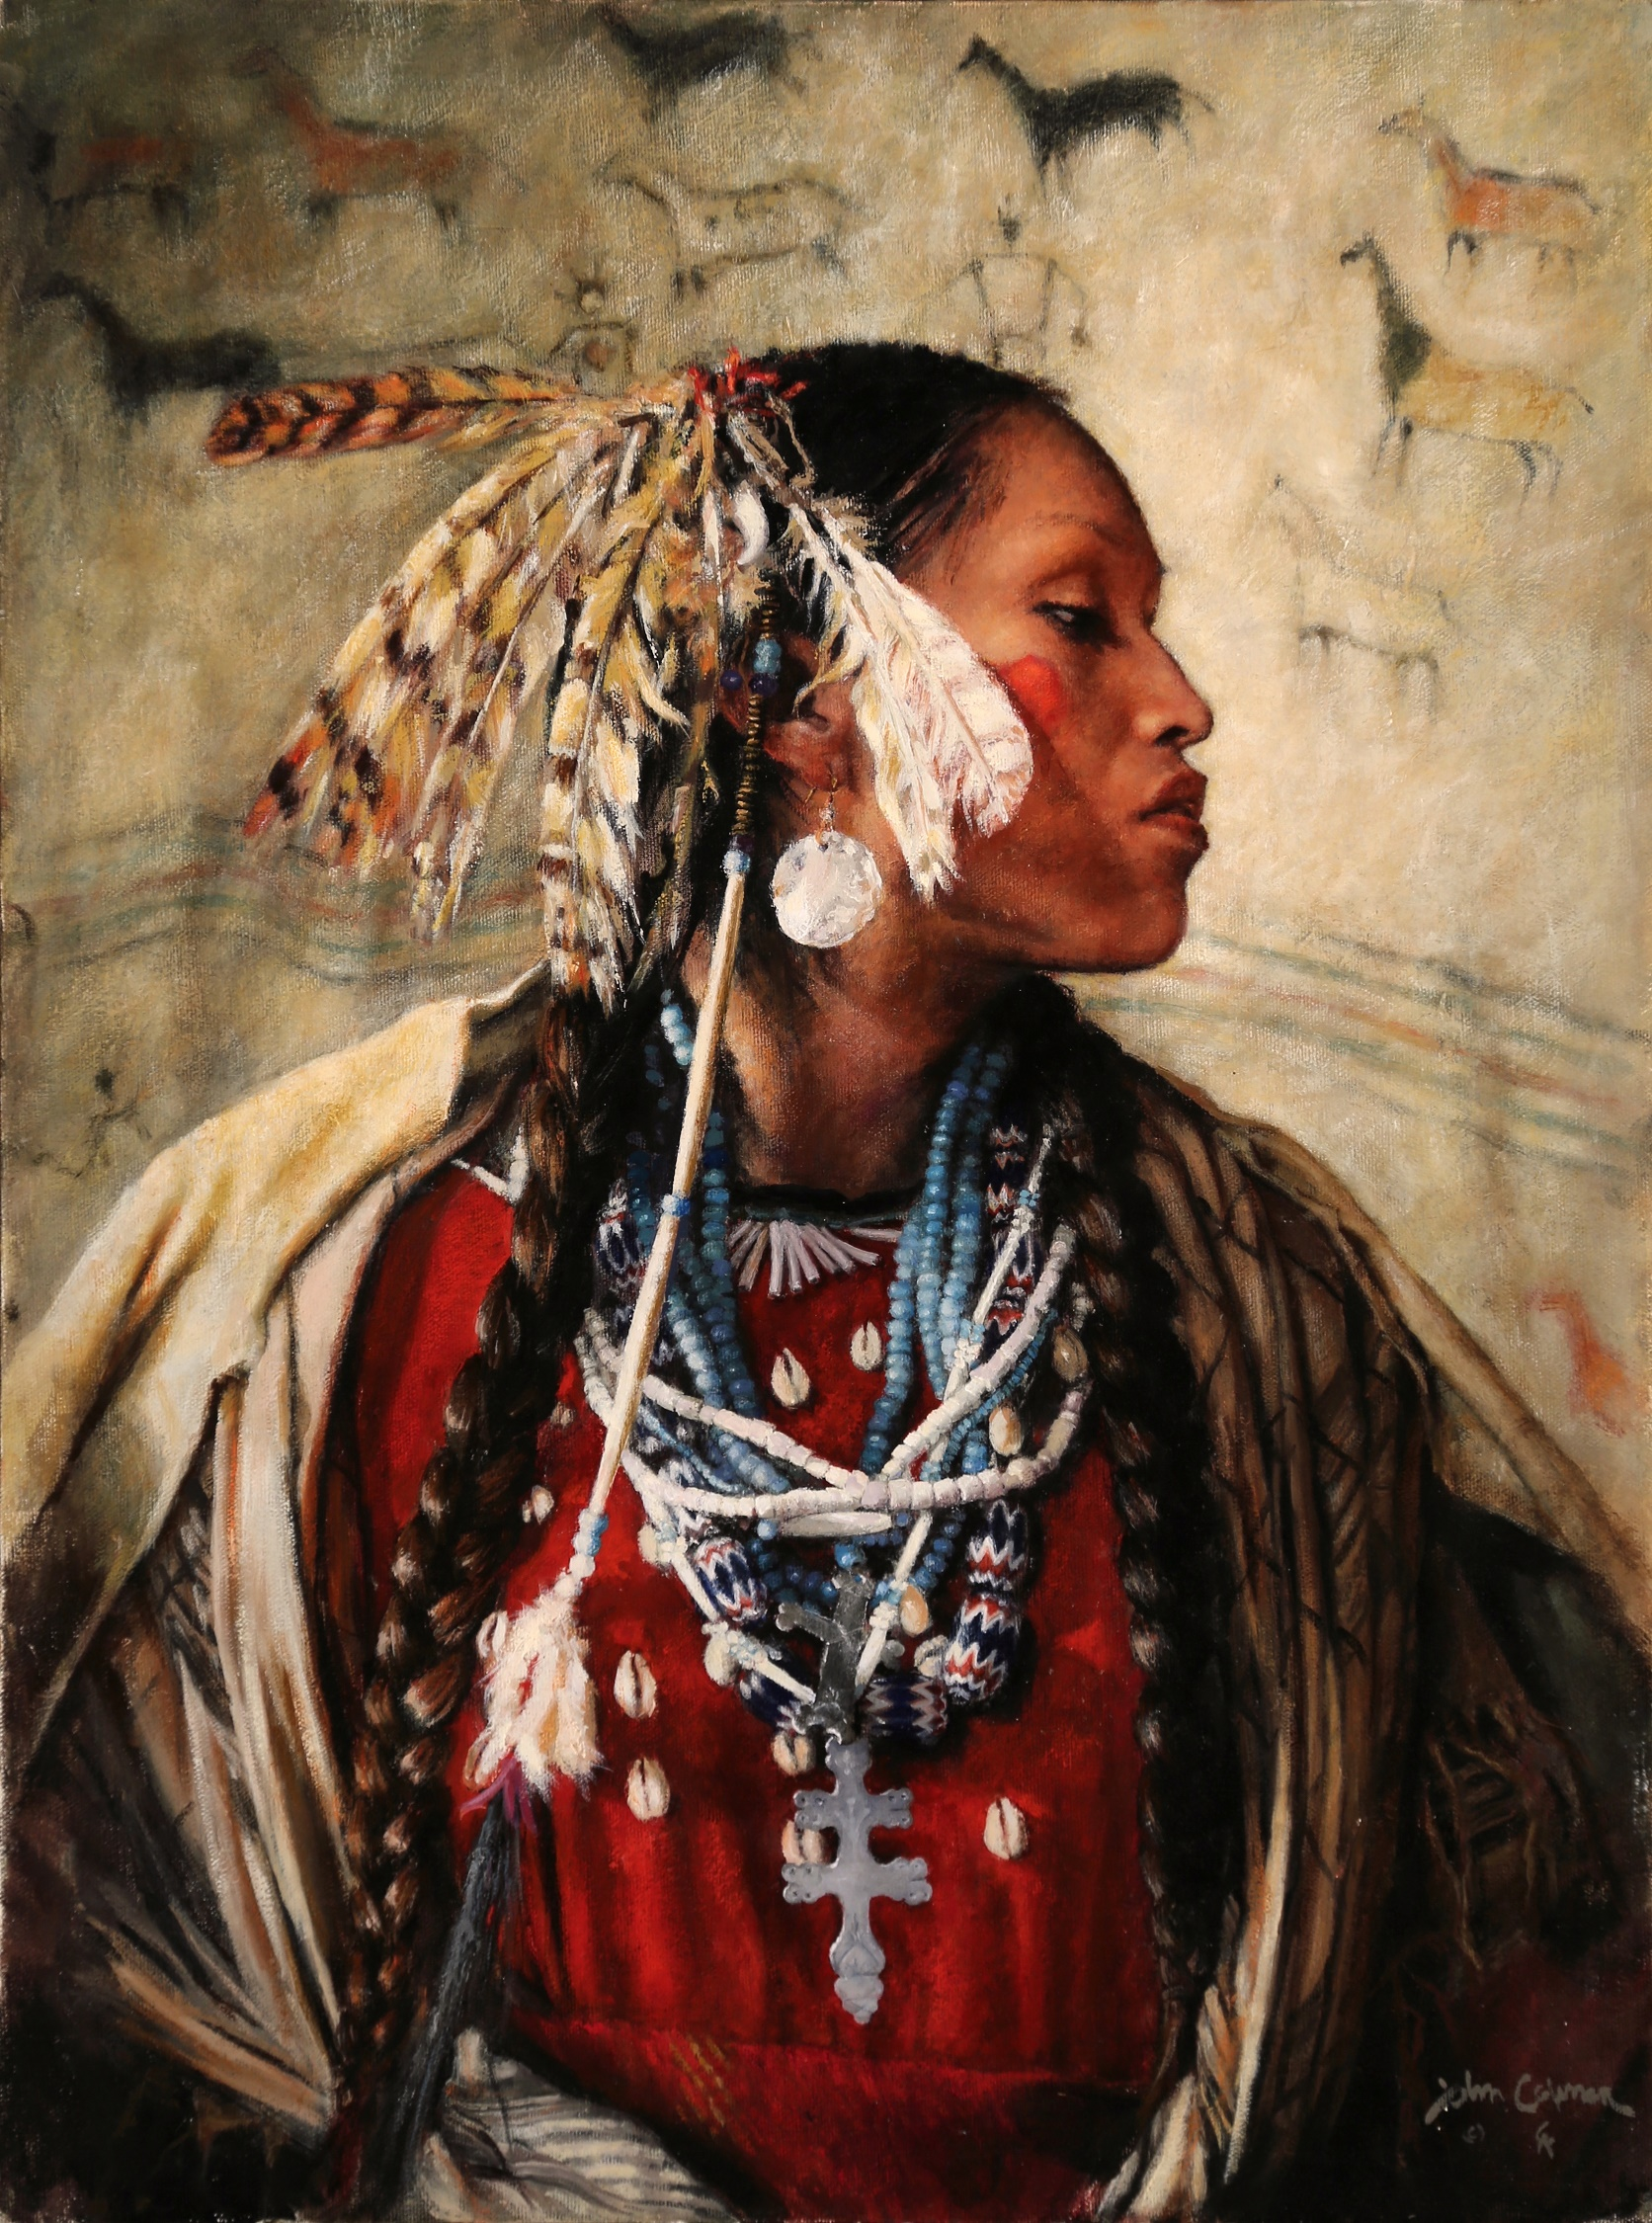 Unconquered by John Coleman, Oil